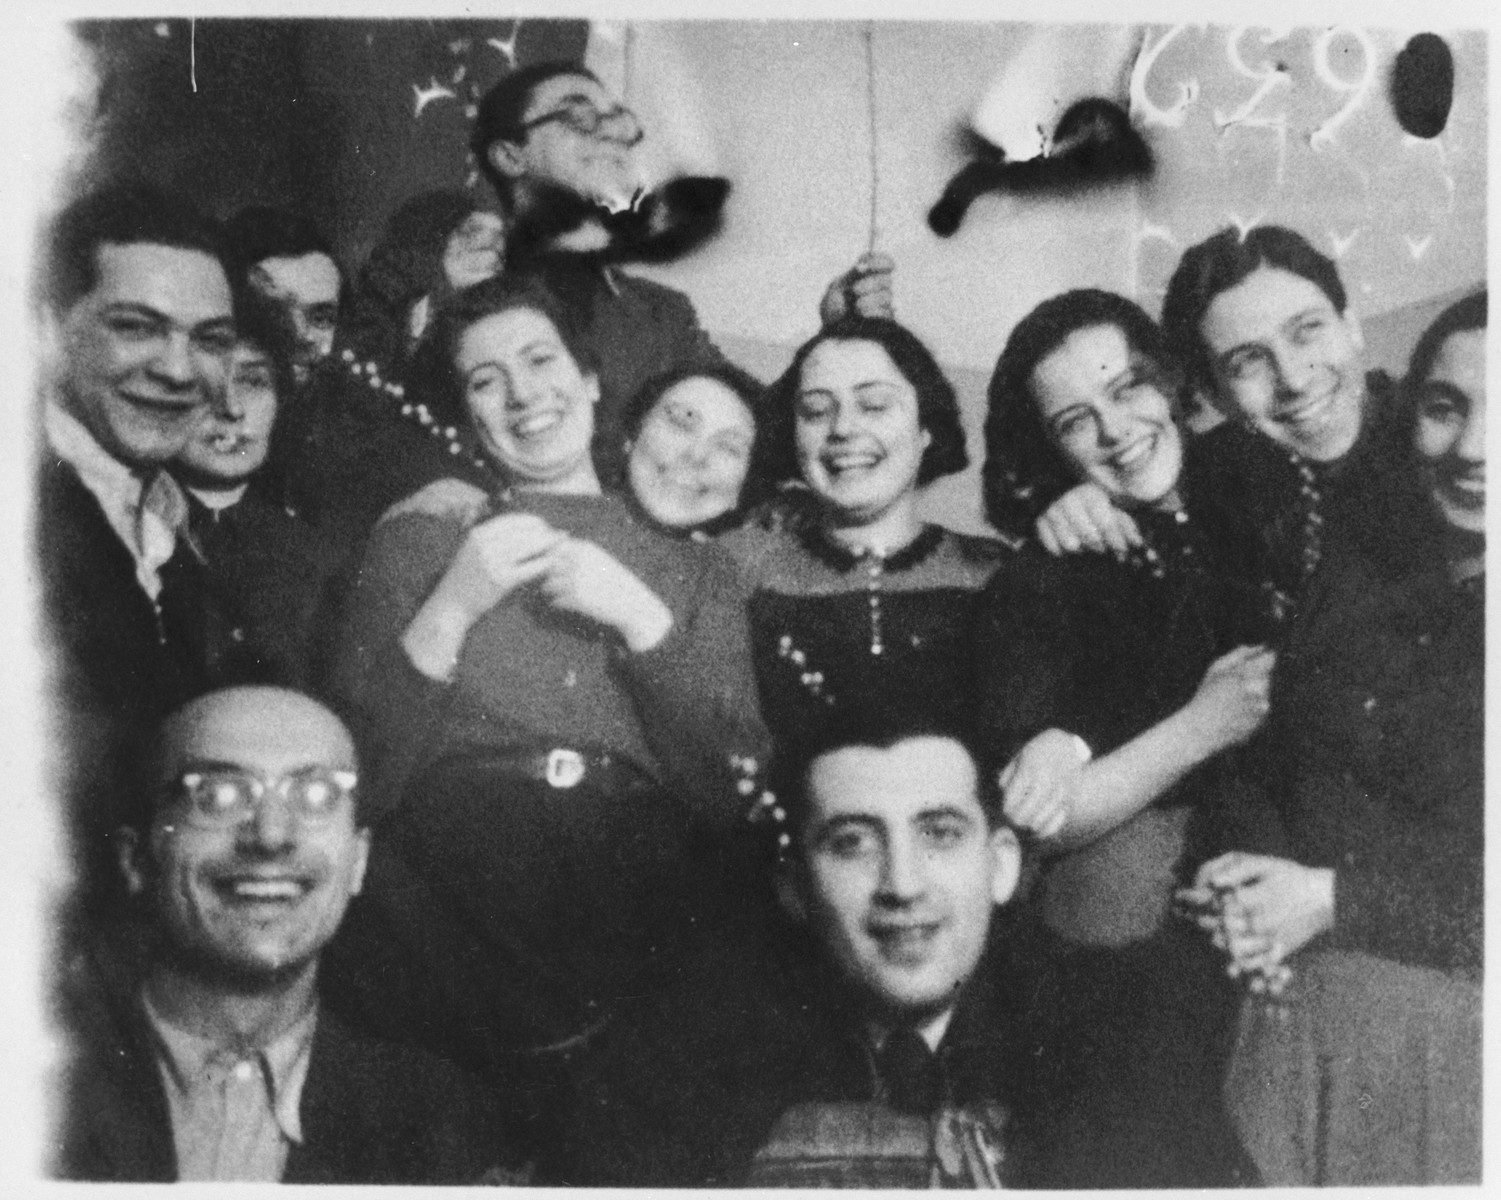 Members of the Hehalutz Zionist youth movement in Berlin celebrate the holiday of Shavuot.  Among those pictured is Jizchak Schwersenz (front row, left).